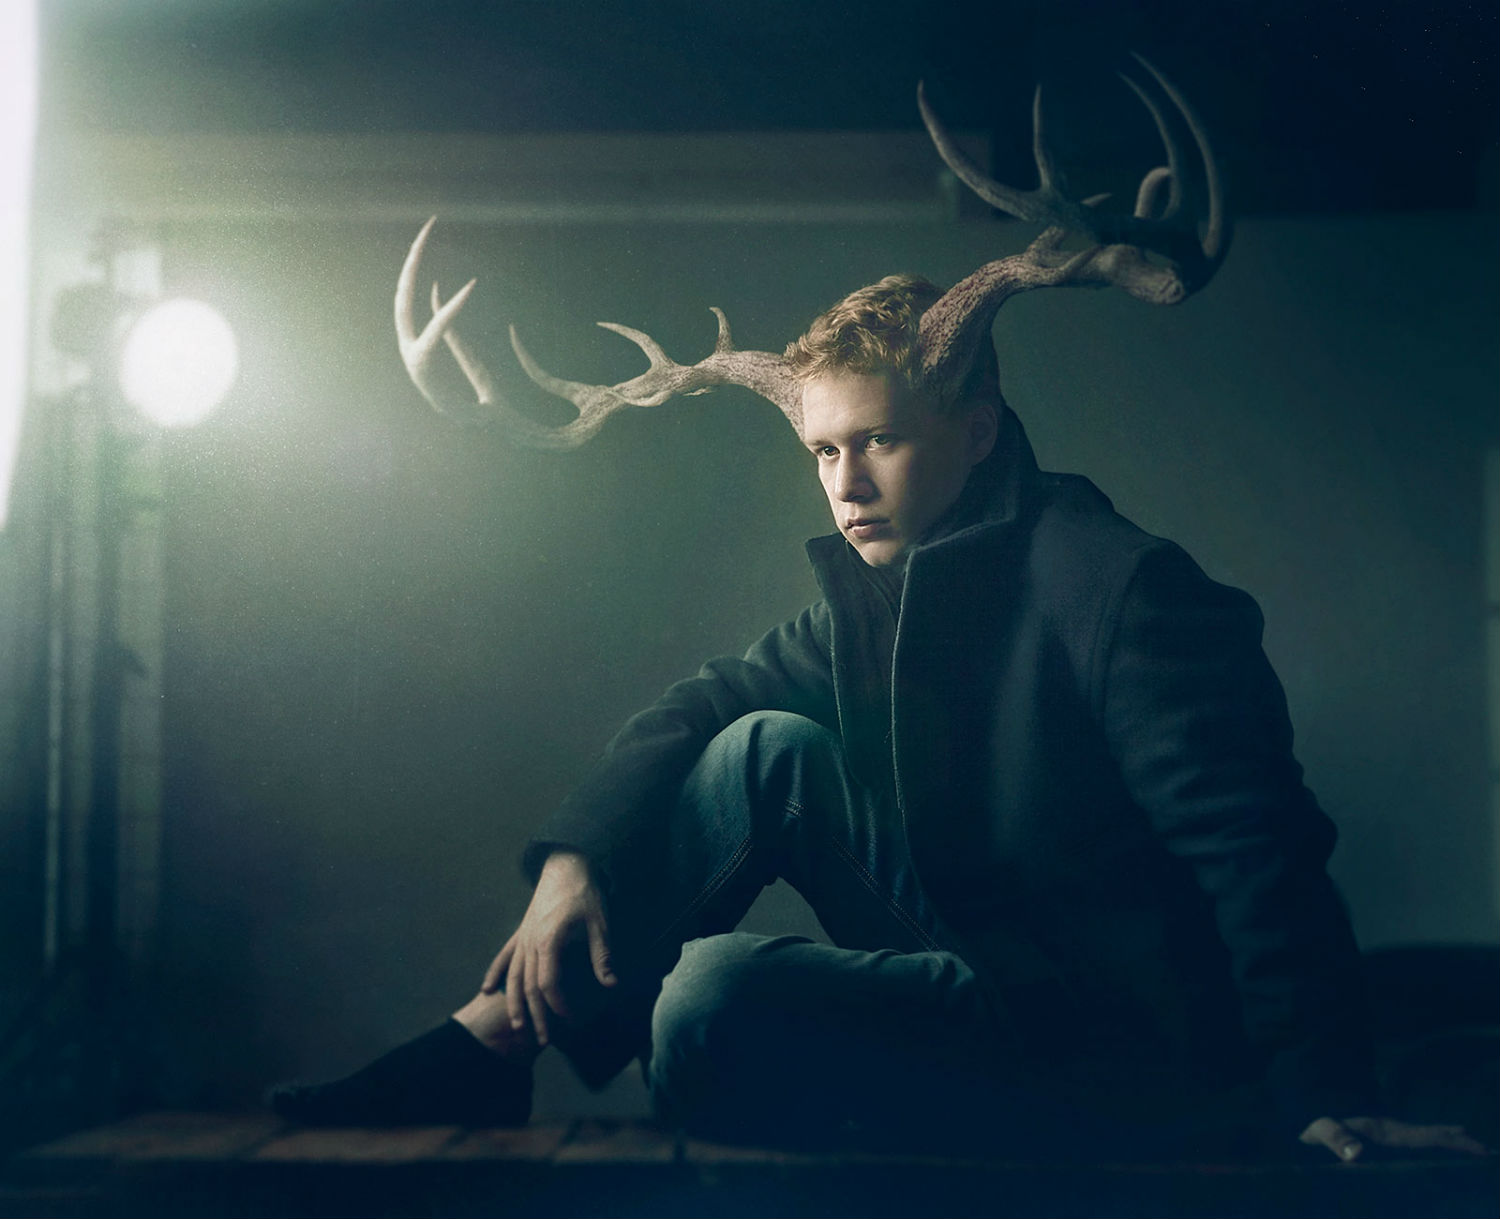 aaron nace photography digital colour surreal antlers